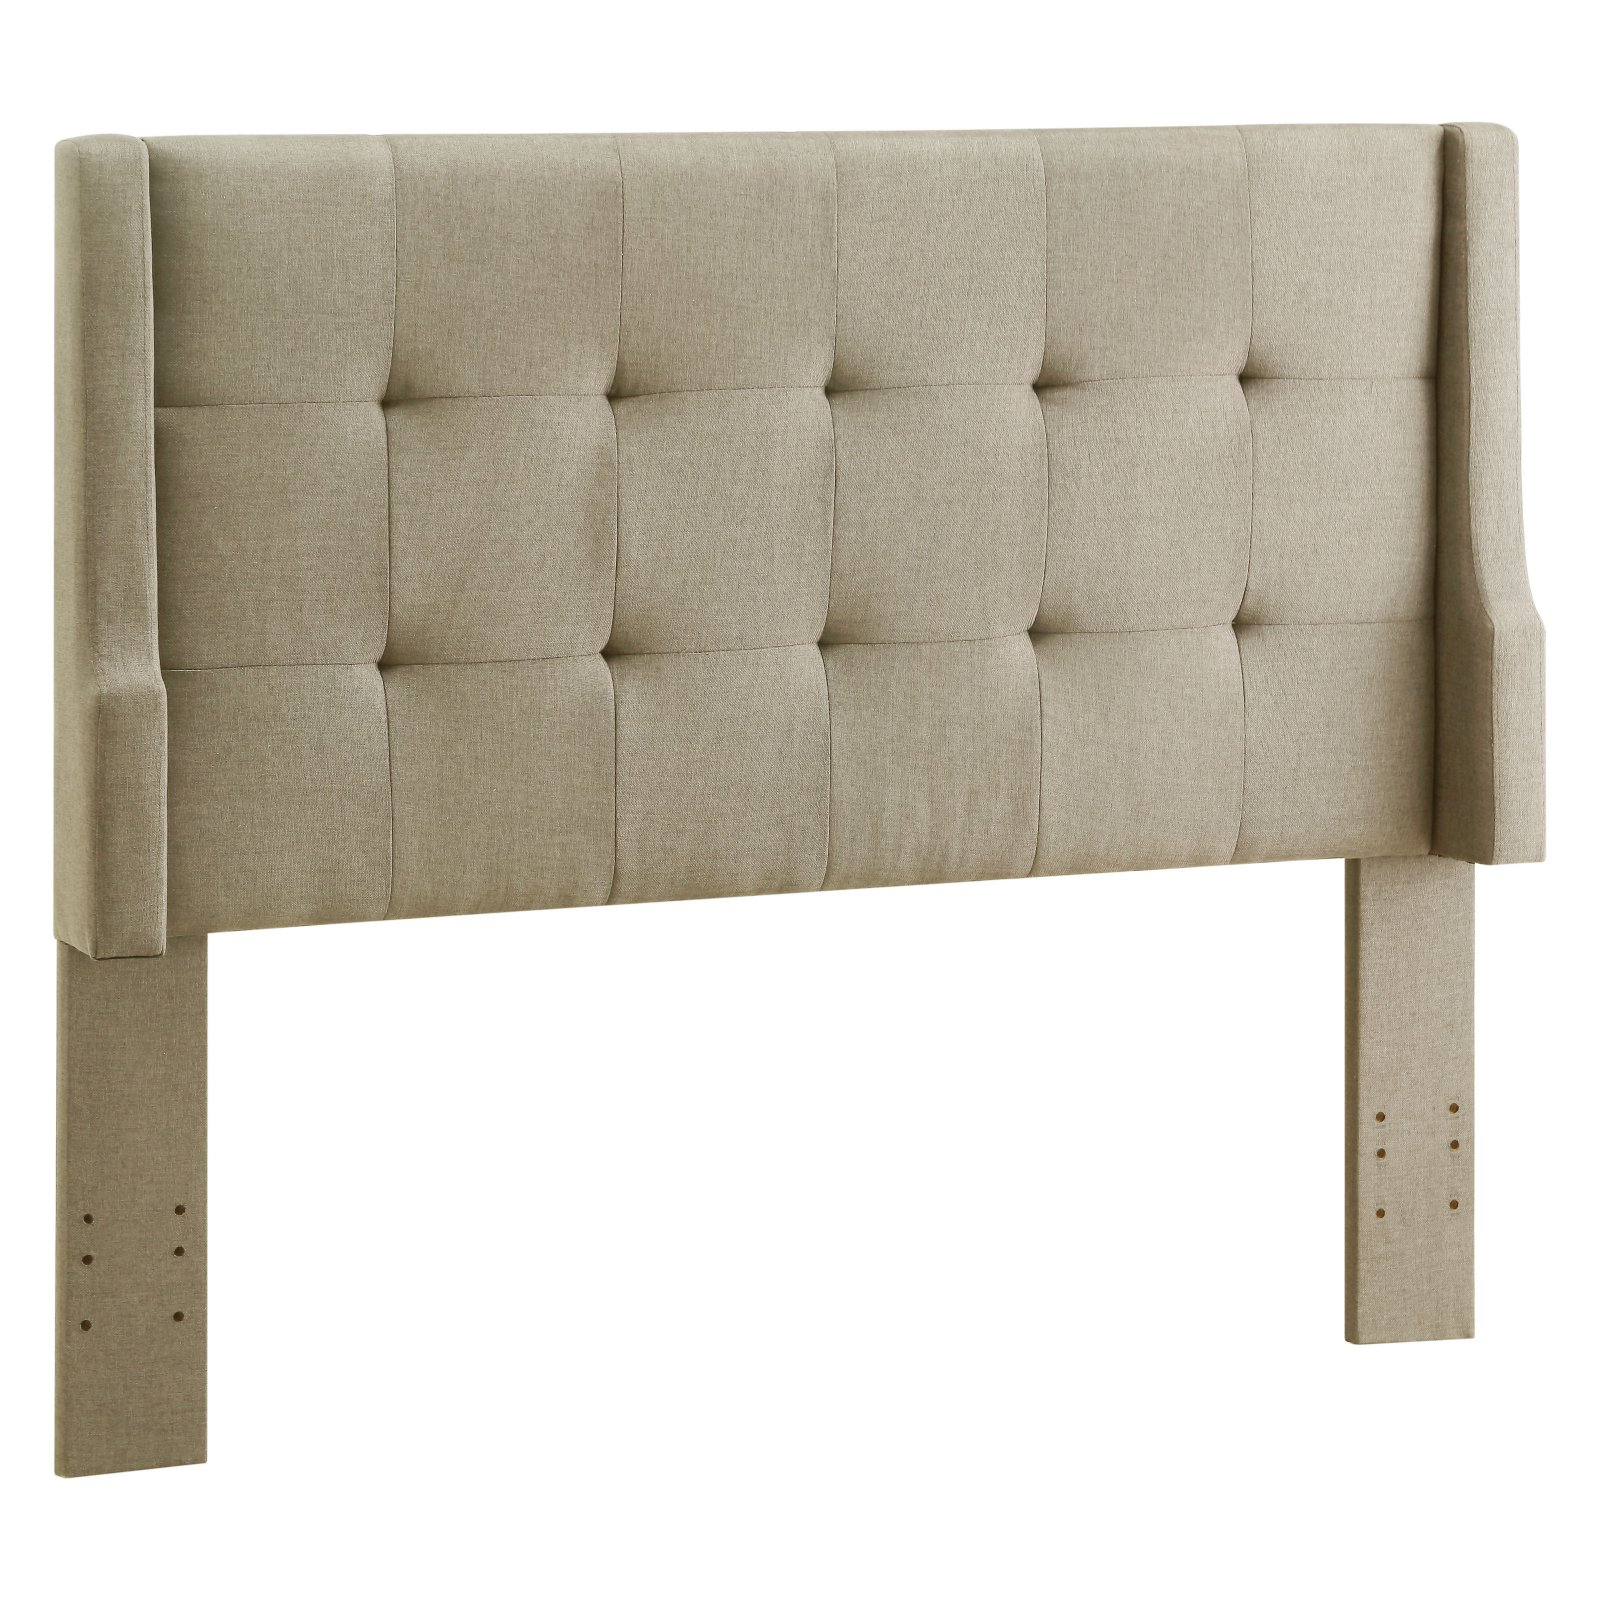 Linon Luxe Full/Queen Headboard, Natural Linen with Tufted Accents